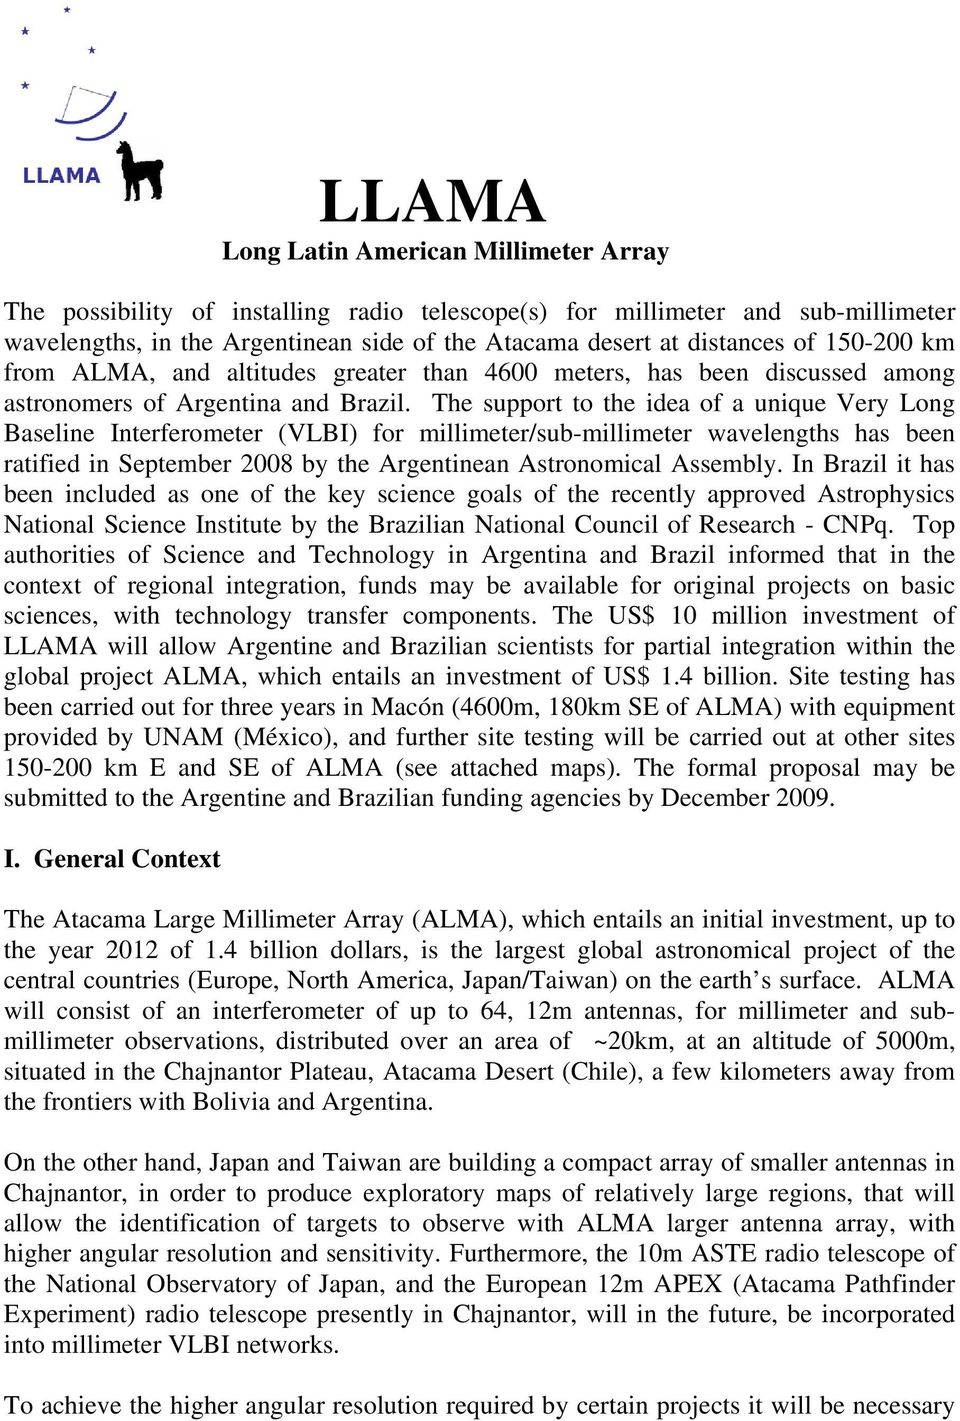 The support to the idea of a unique Very Long Baseline Interferometer (VLBI) for millimeter/sub-millimeter wavelengths has been ratified in September 2008 by the Argentinean Astronomical Assembly.